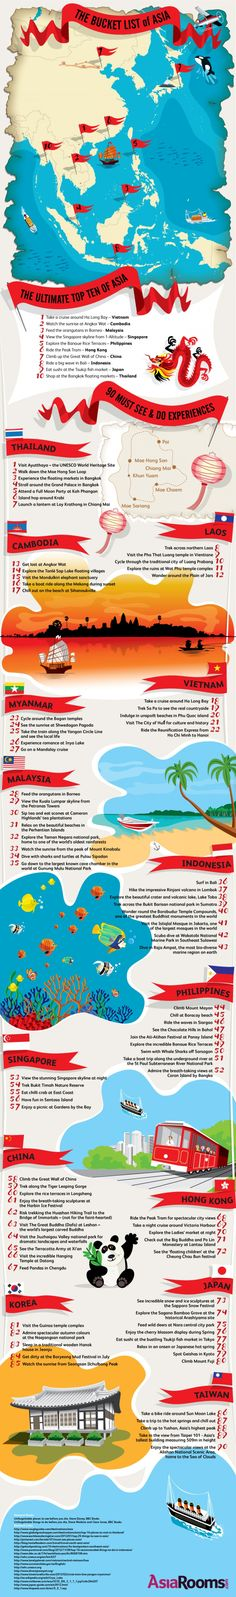 Need some help with this list? LUSU Overseas has got your back!